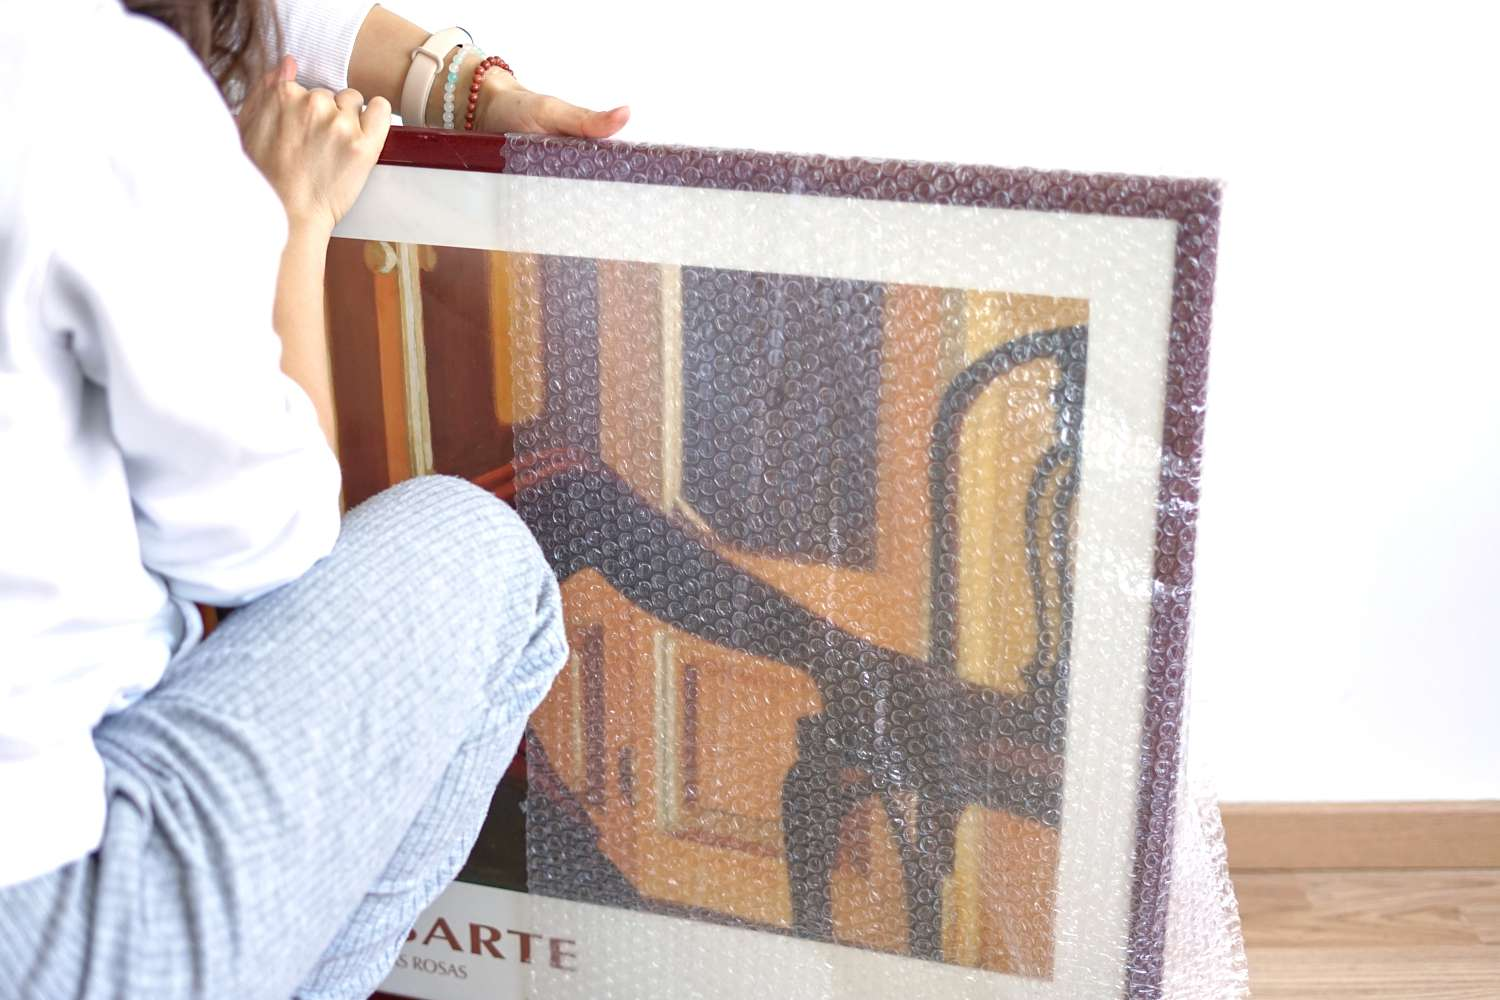 person crouches down on ground to wrap bubble wrap around framed picture for shipping